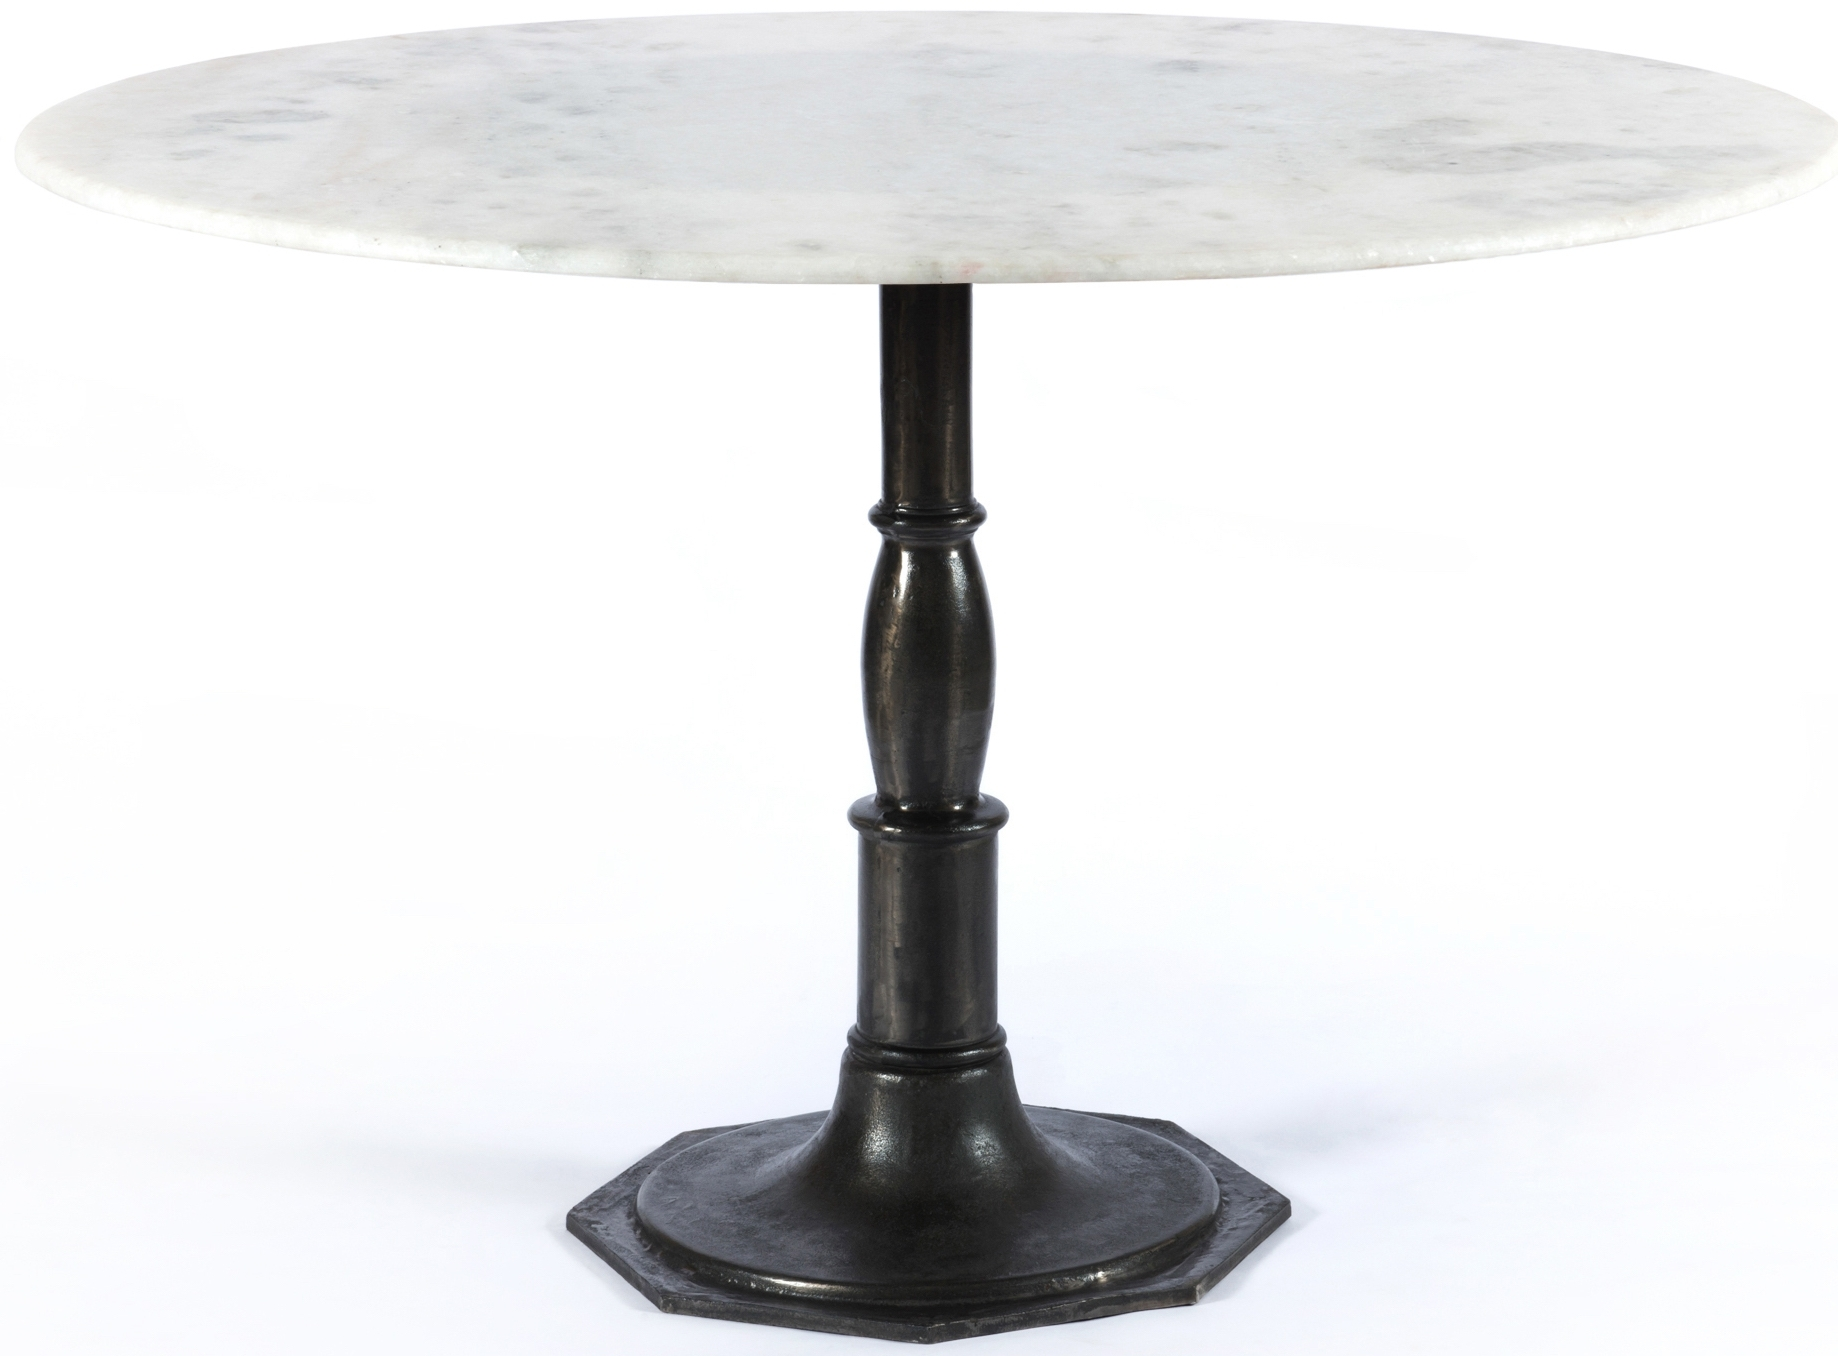 Htgt Furniture intended for Washed Old Oak & Waxed Black Legs Bar Tables